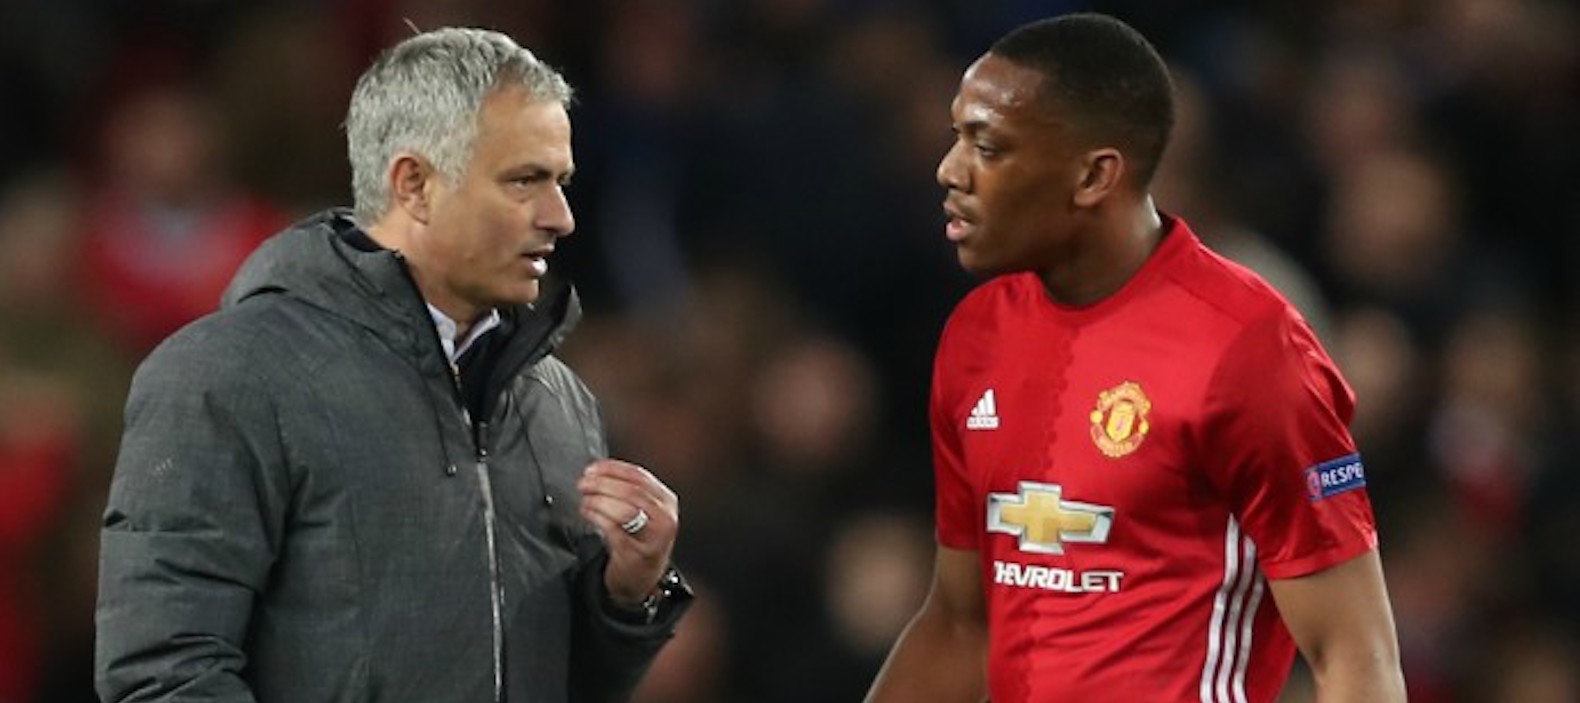 Gary Neville believes Jose Mourinho fallout began with Anthony Martial